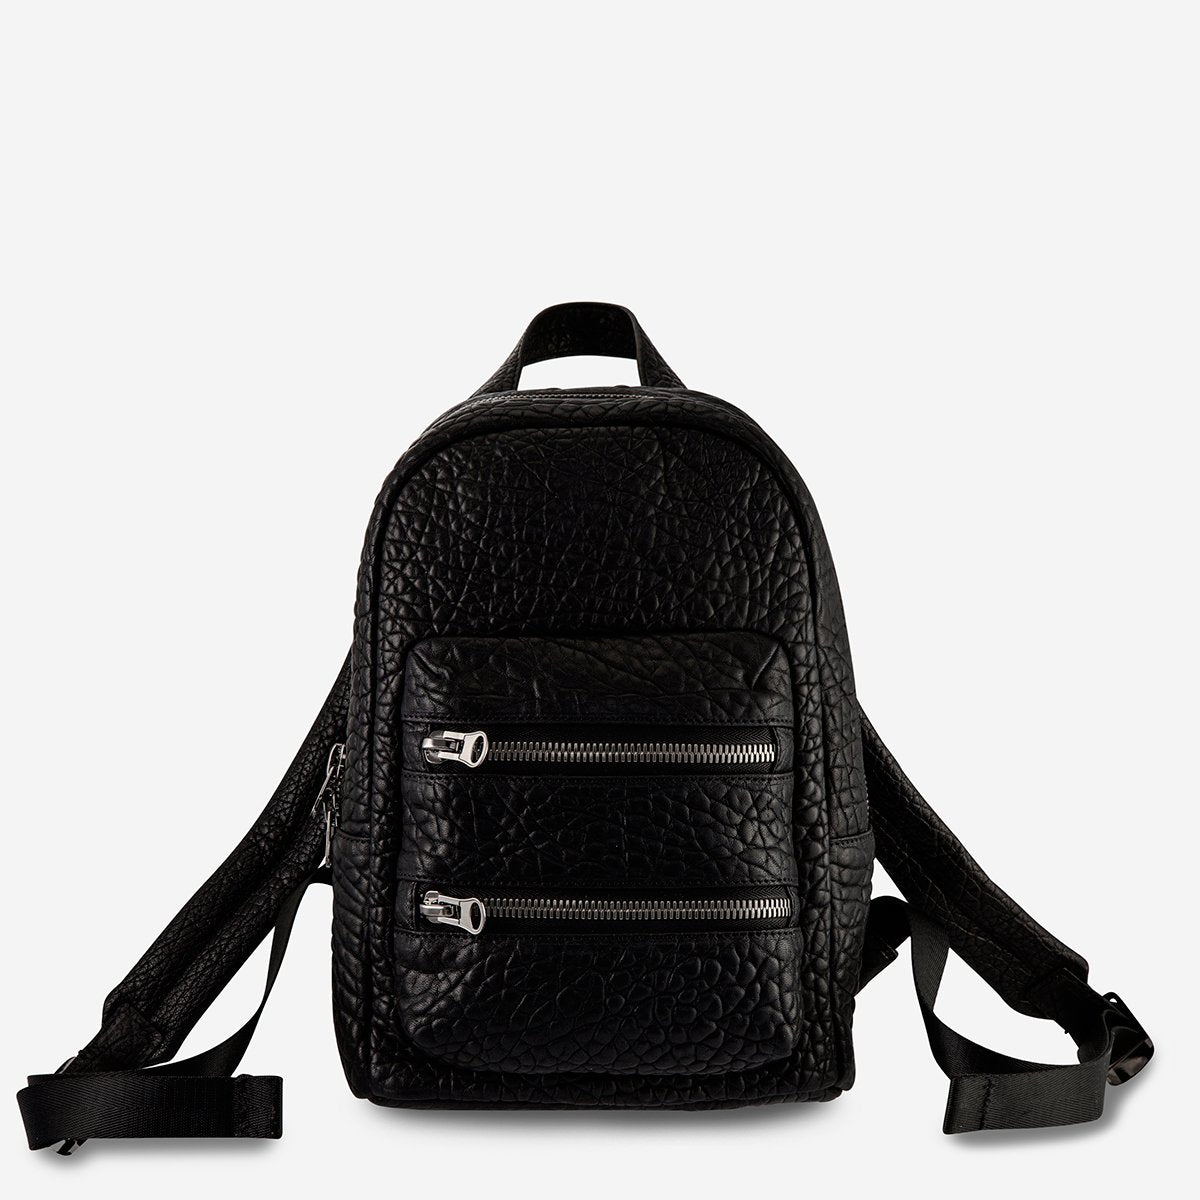 STATUS ANXIETY  //  Racketeer Backpack BLACK BUBBLE